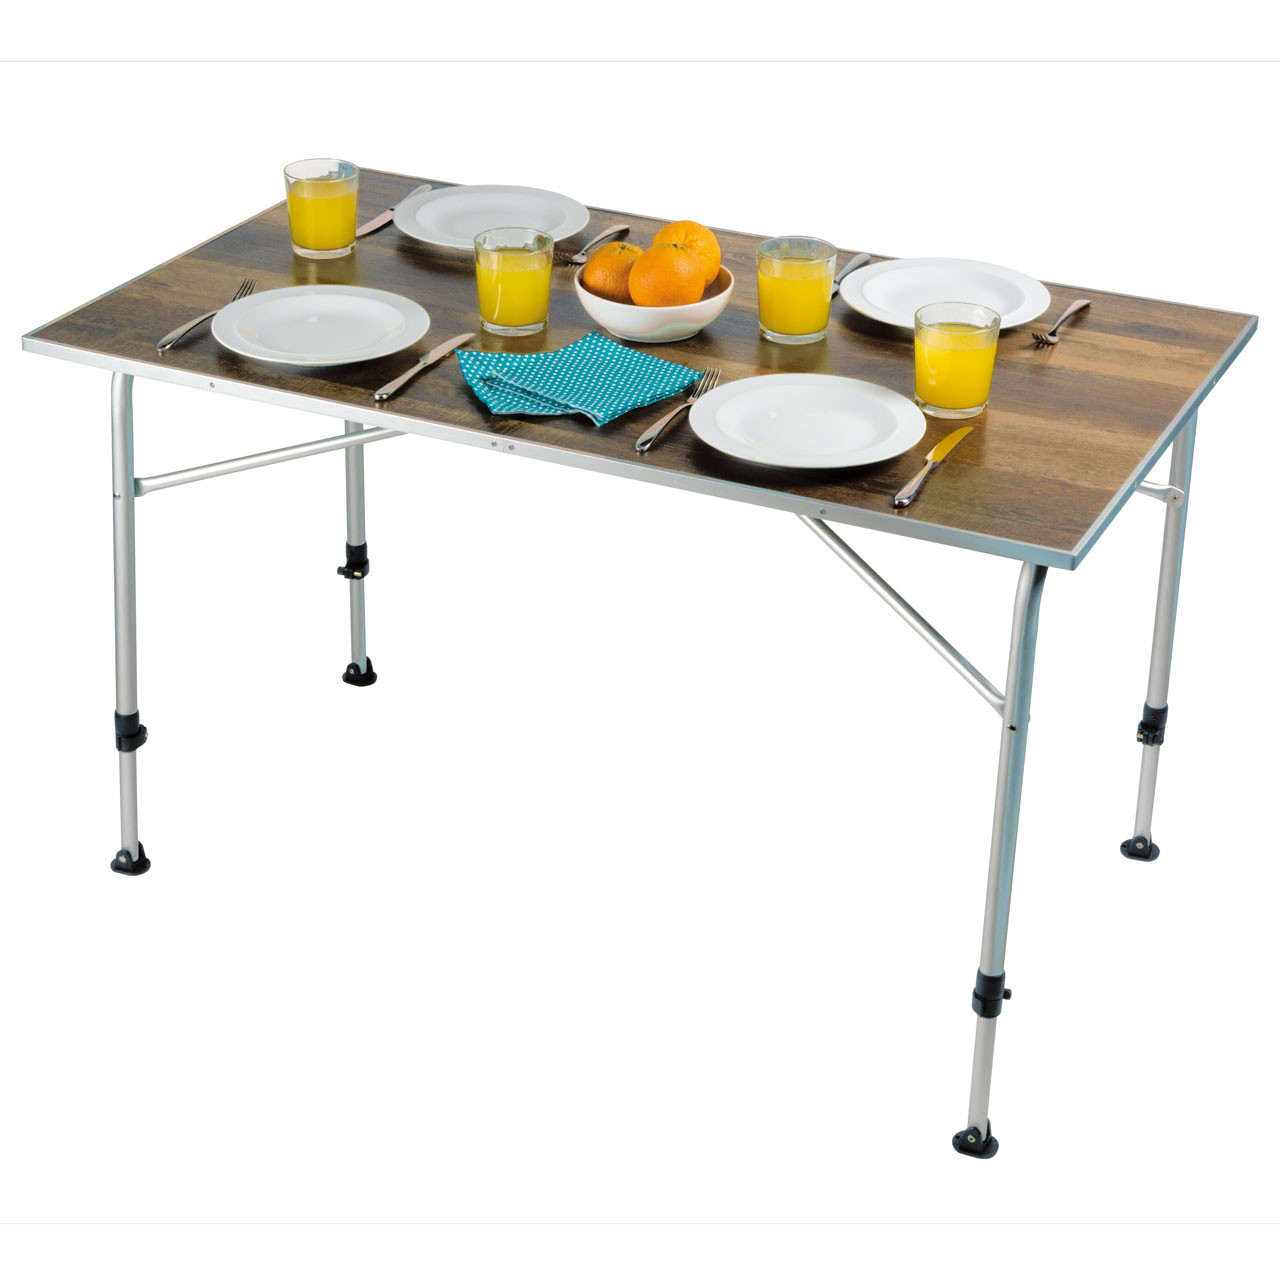 Kampa Zero Table - Large from Camperite Leisure